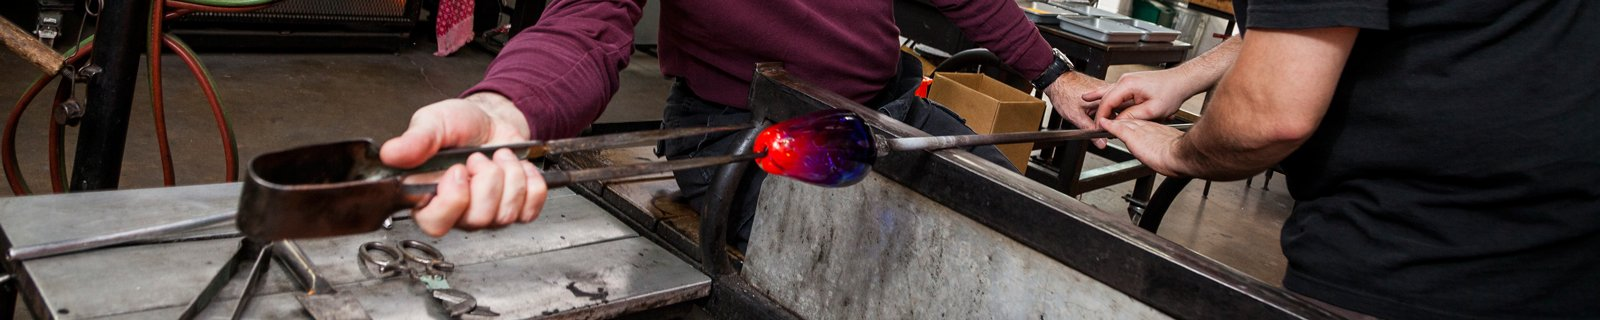 Veterans Glassblowing at The Studio of The Corning Museum of Glass